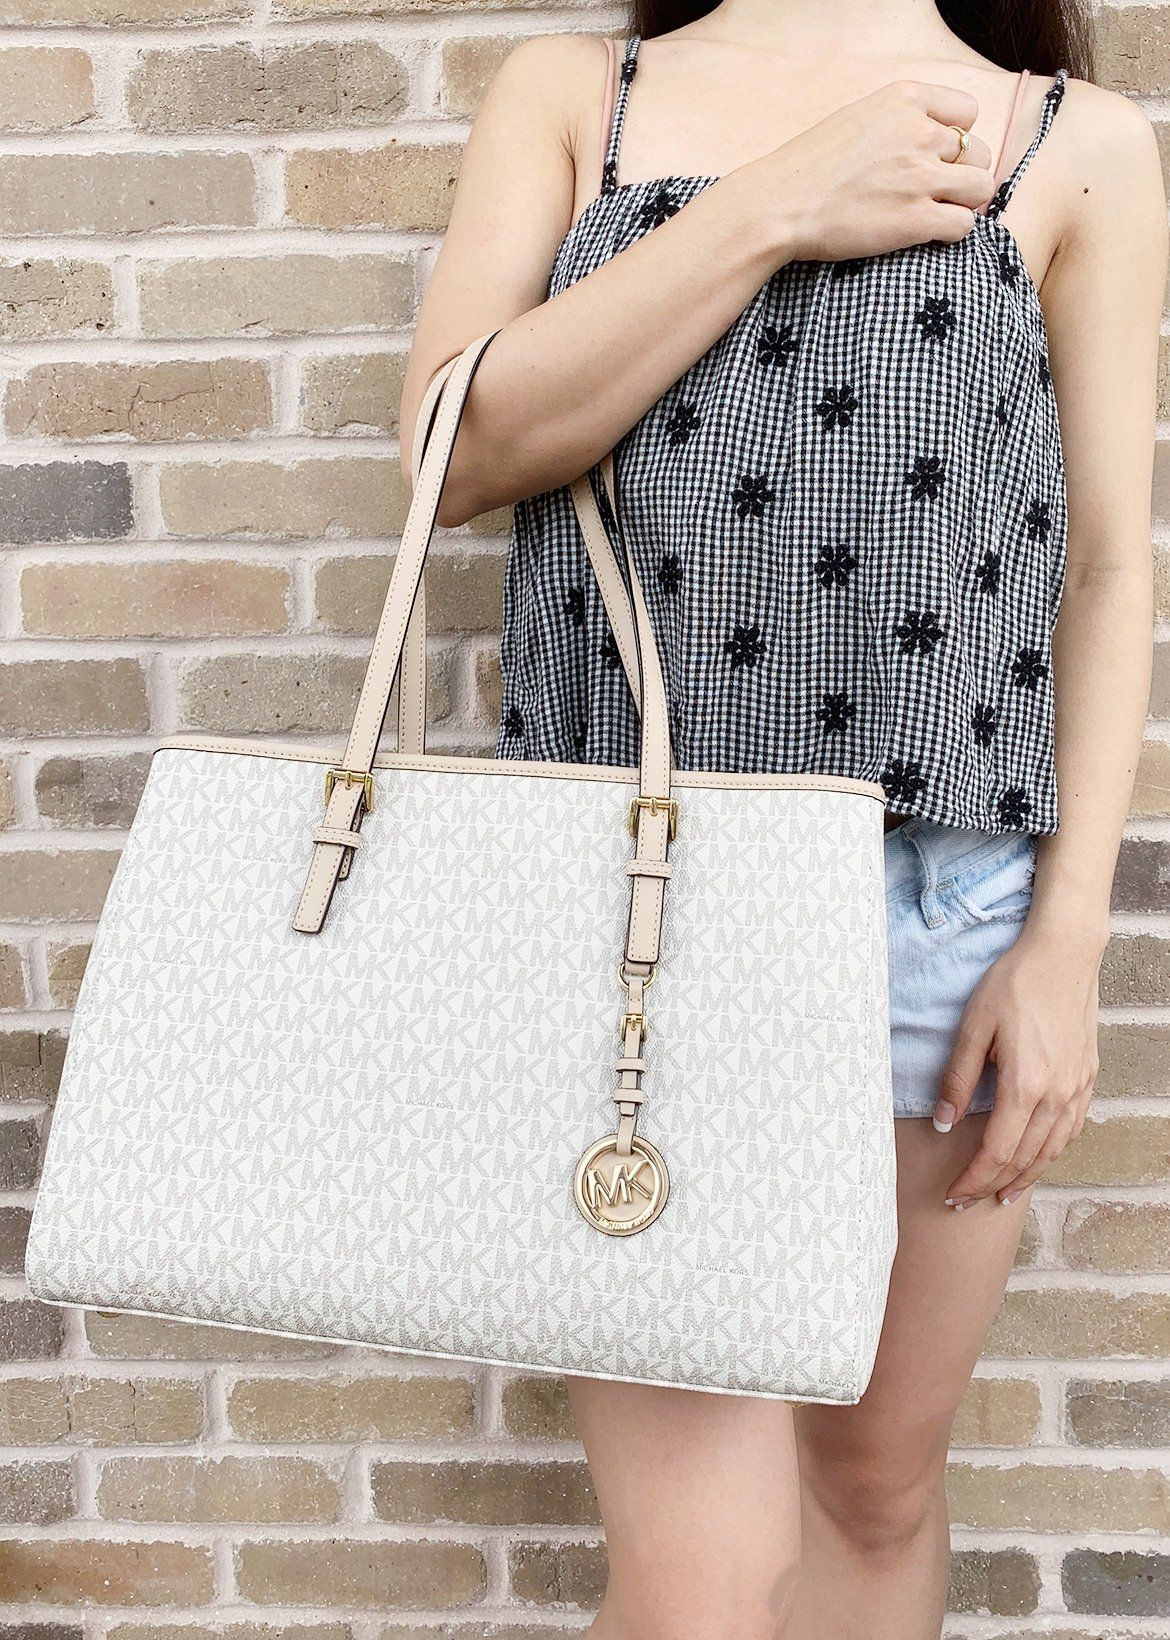 bfde4492b8a4 Michael Kors Jet Set Travel Large East West Tote Vanilla Mk Signature